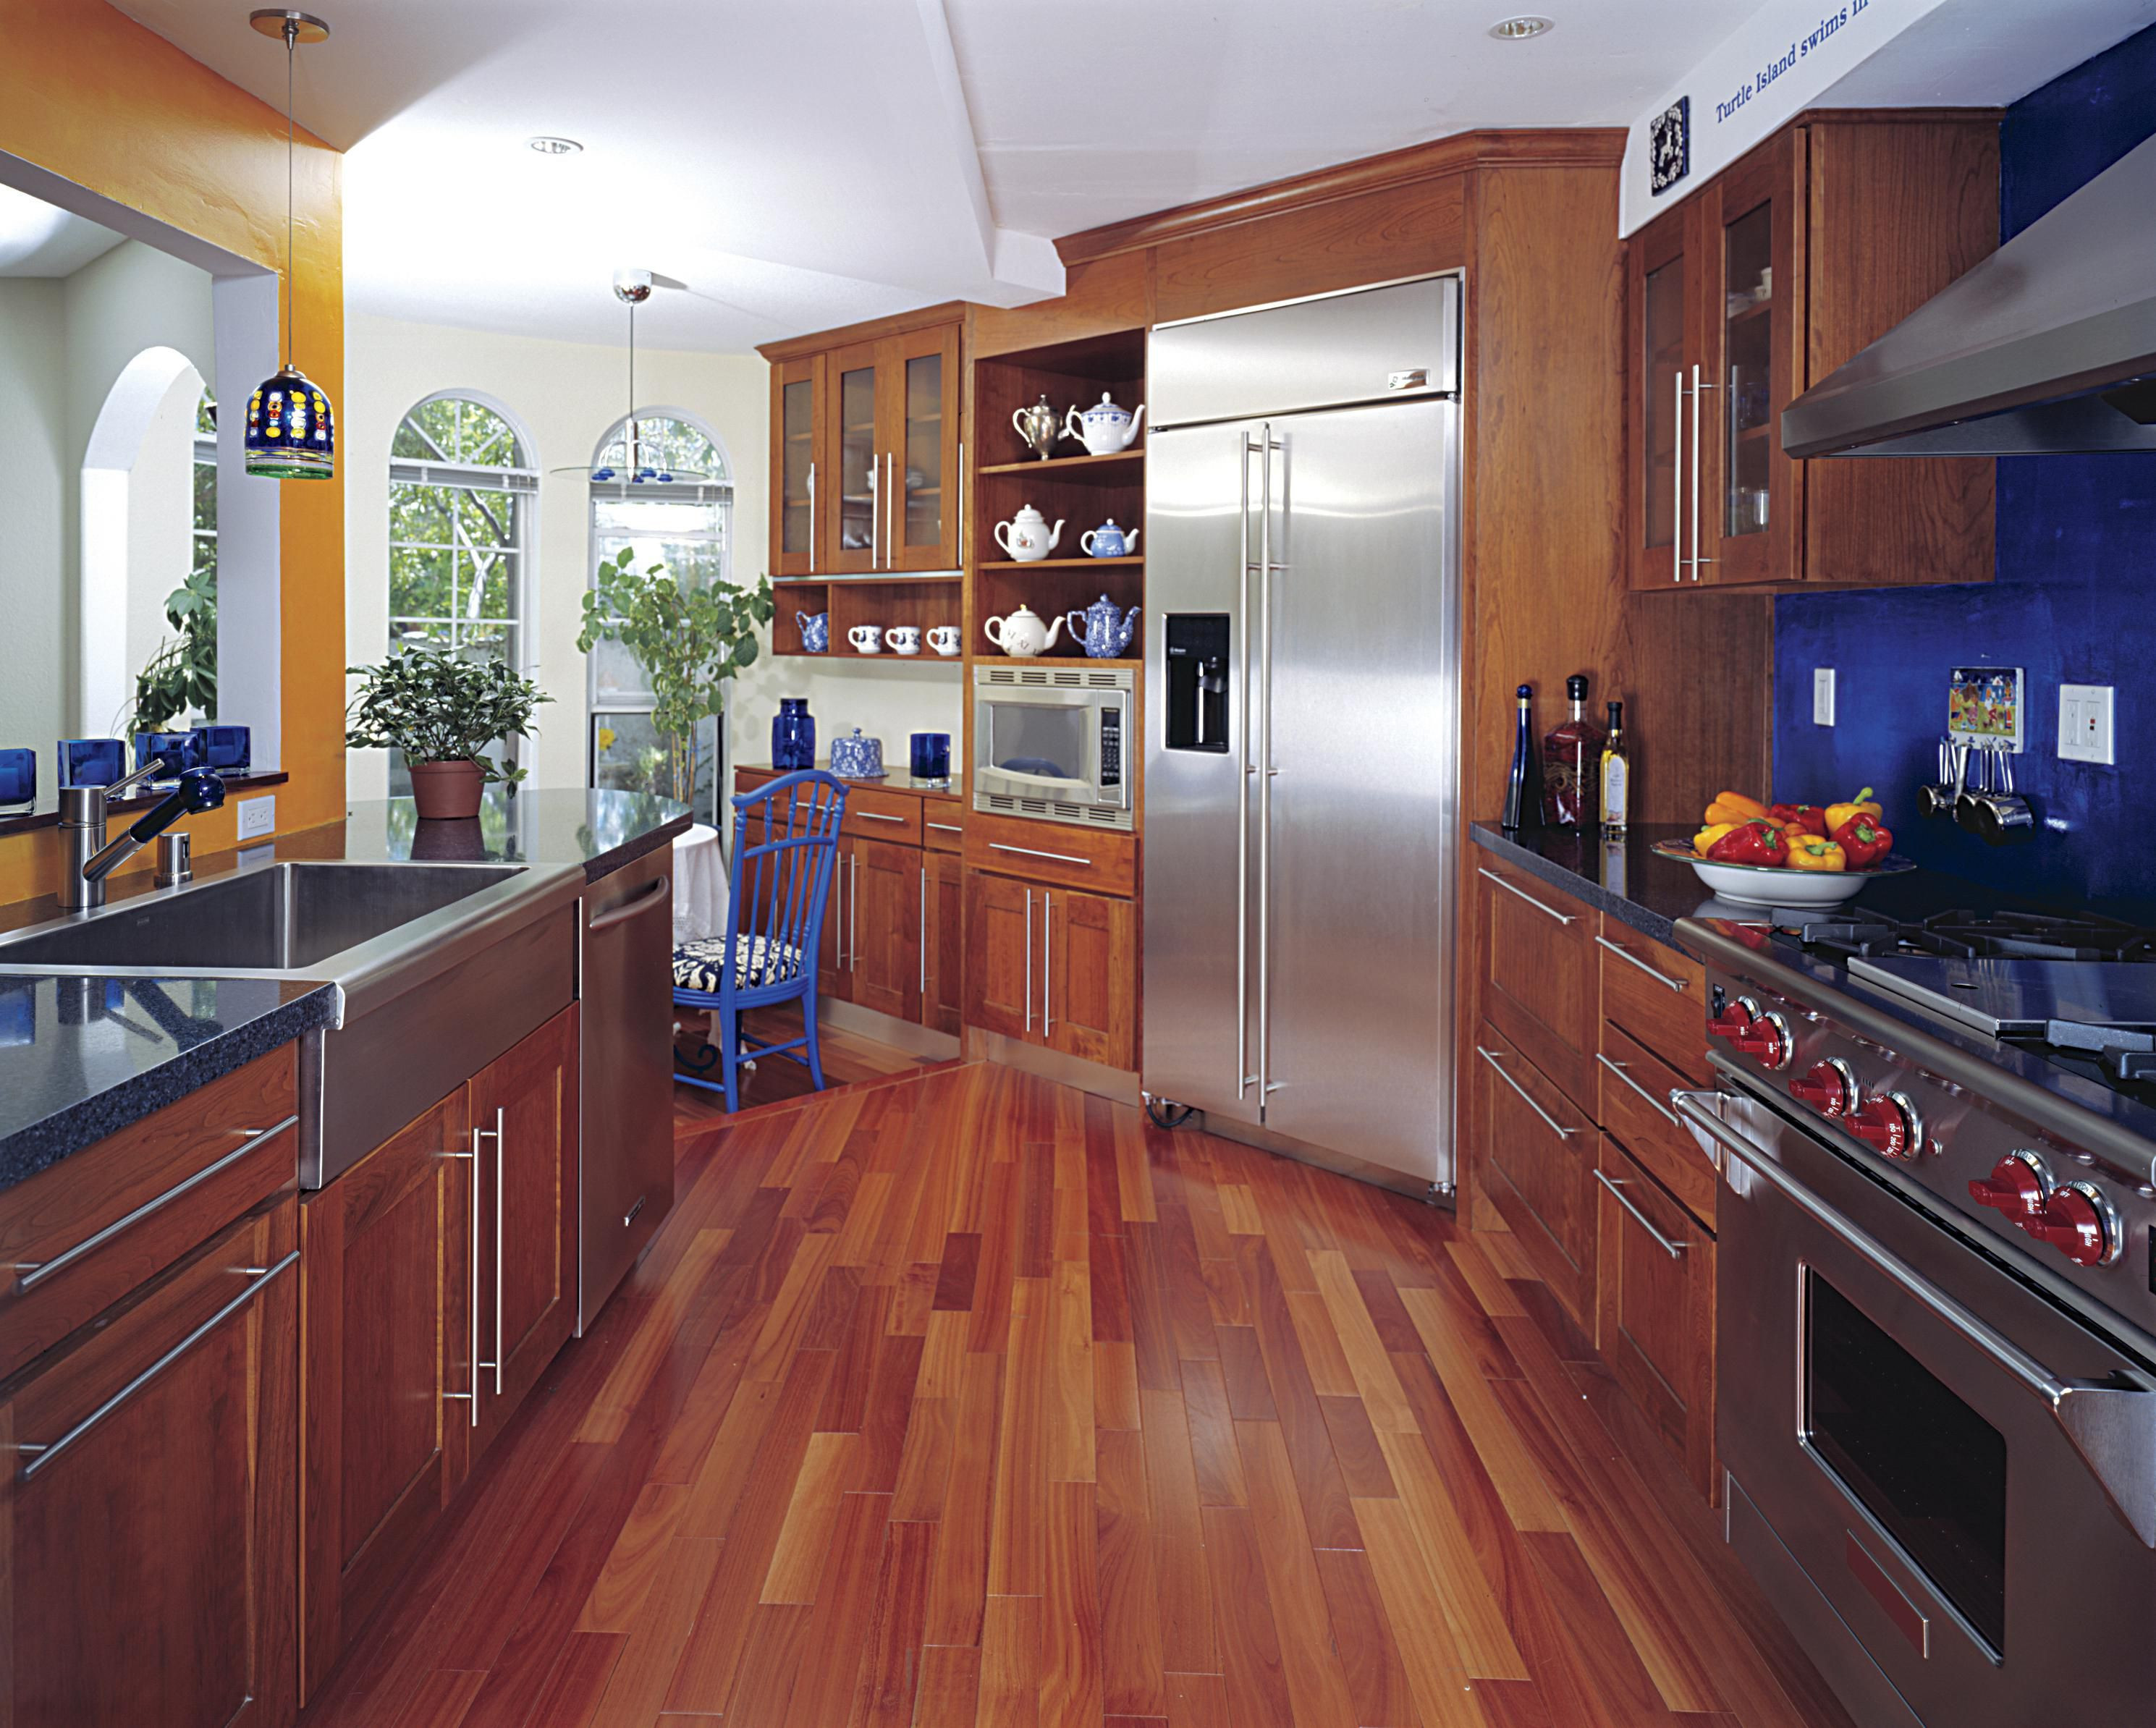 hardwood floor installation contractors of hardwood floor in a kitchen is this allowed with regard to 186828472 56a49f3a5f9b58b7d0d7e142